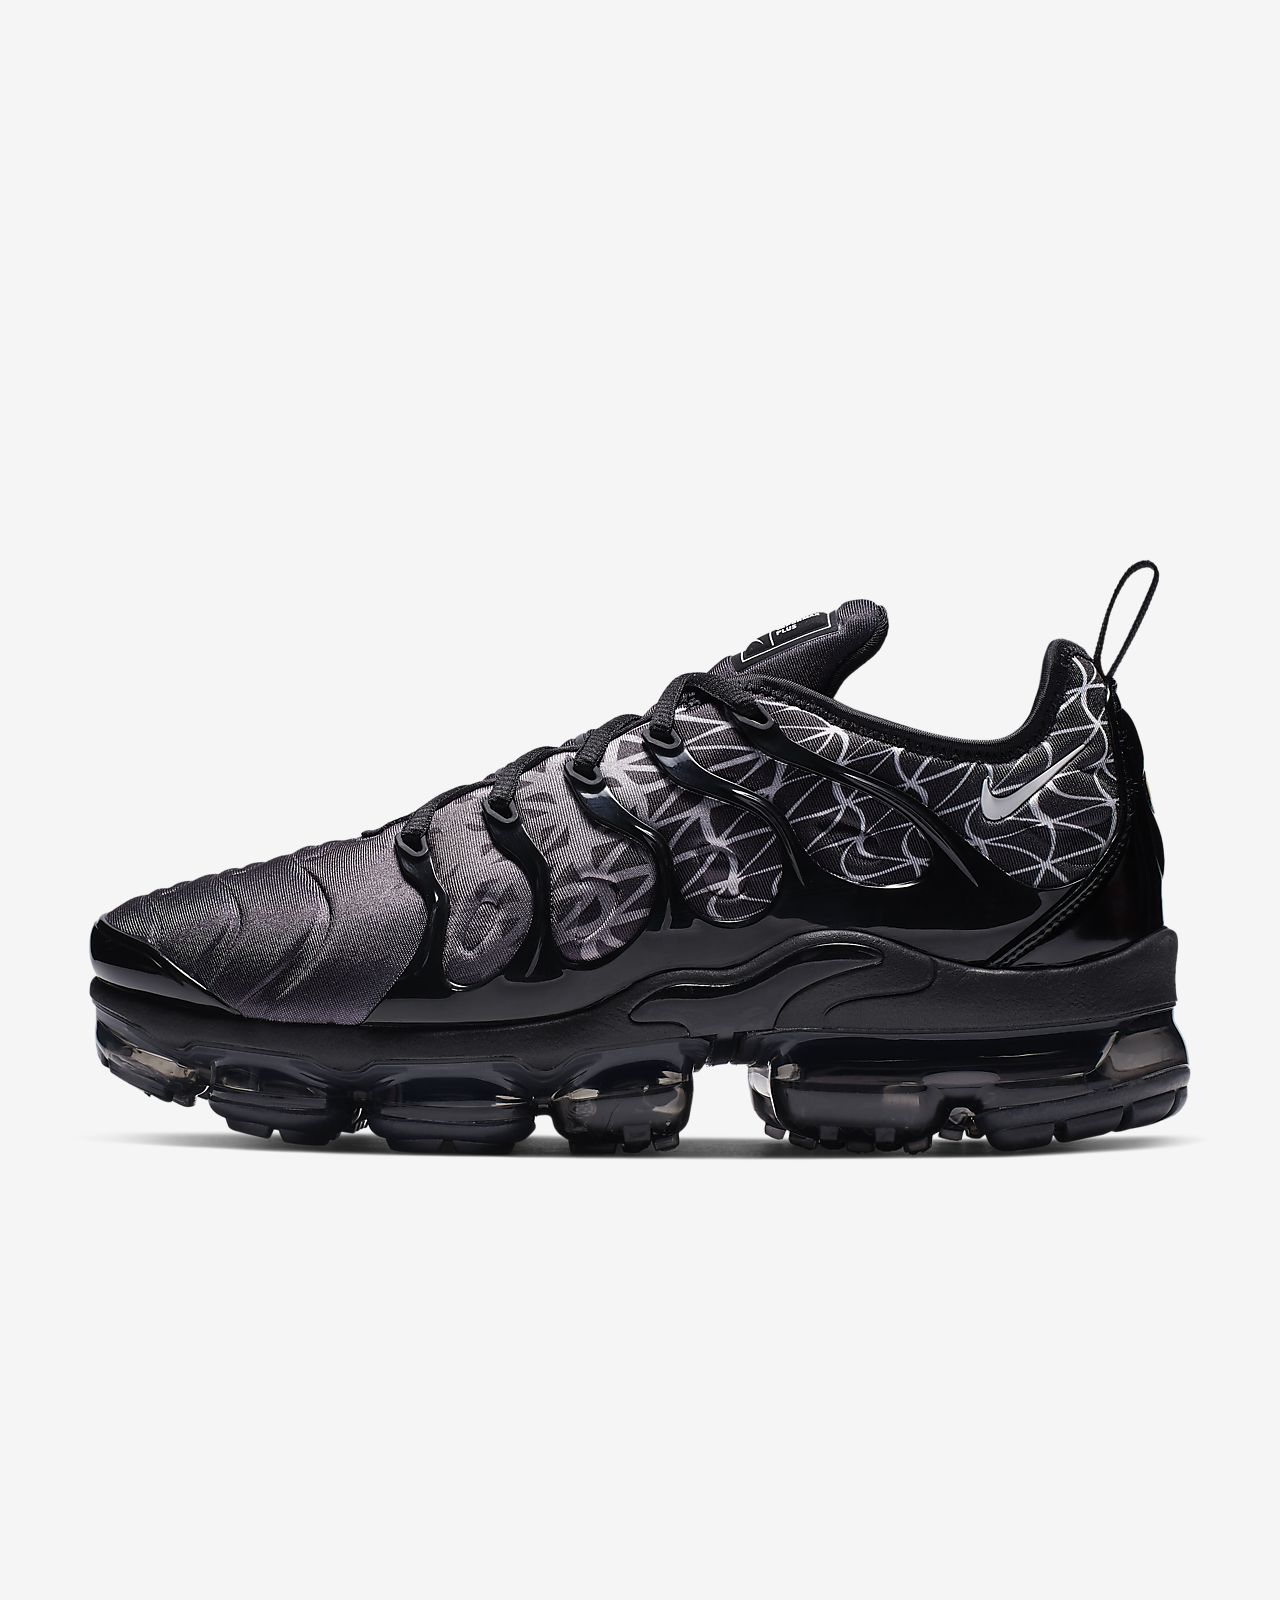 faba30ddac7a9 Nike Air VaporMax Plus Men s Shoe. Nike.com GB